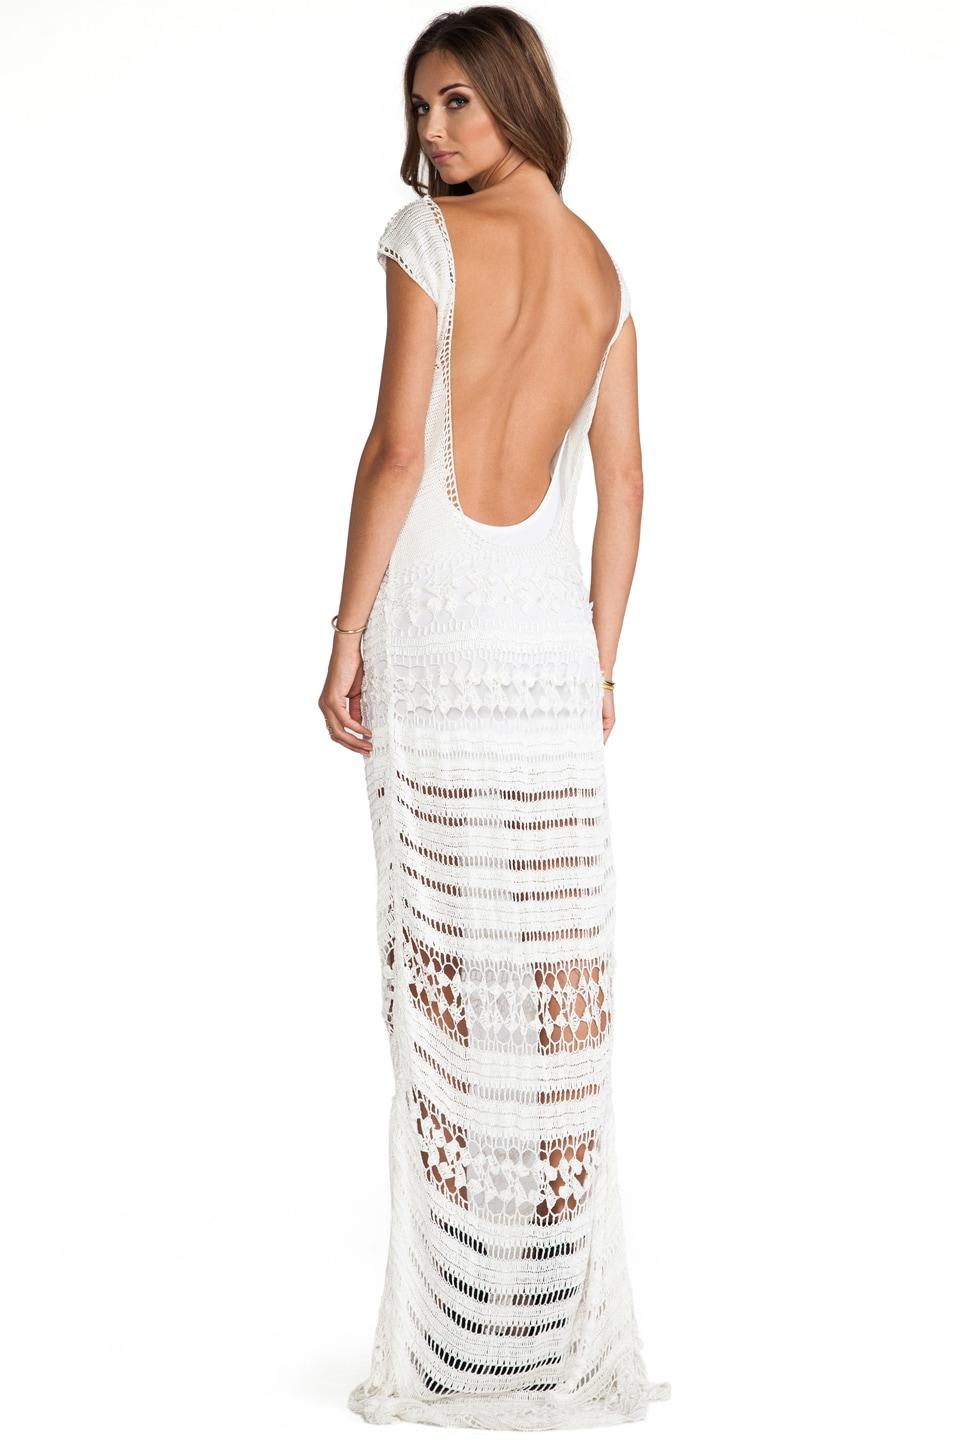 Lovers + Friends Farah Crochet Maxi Dress in White